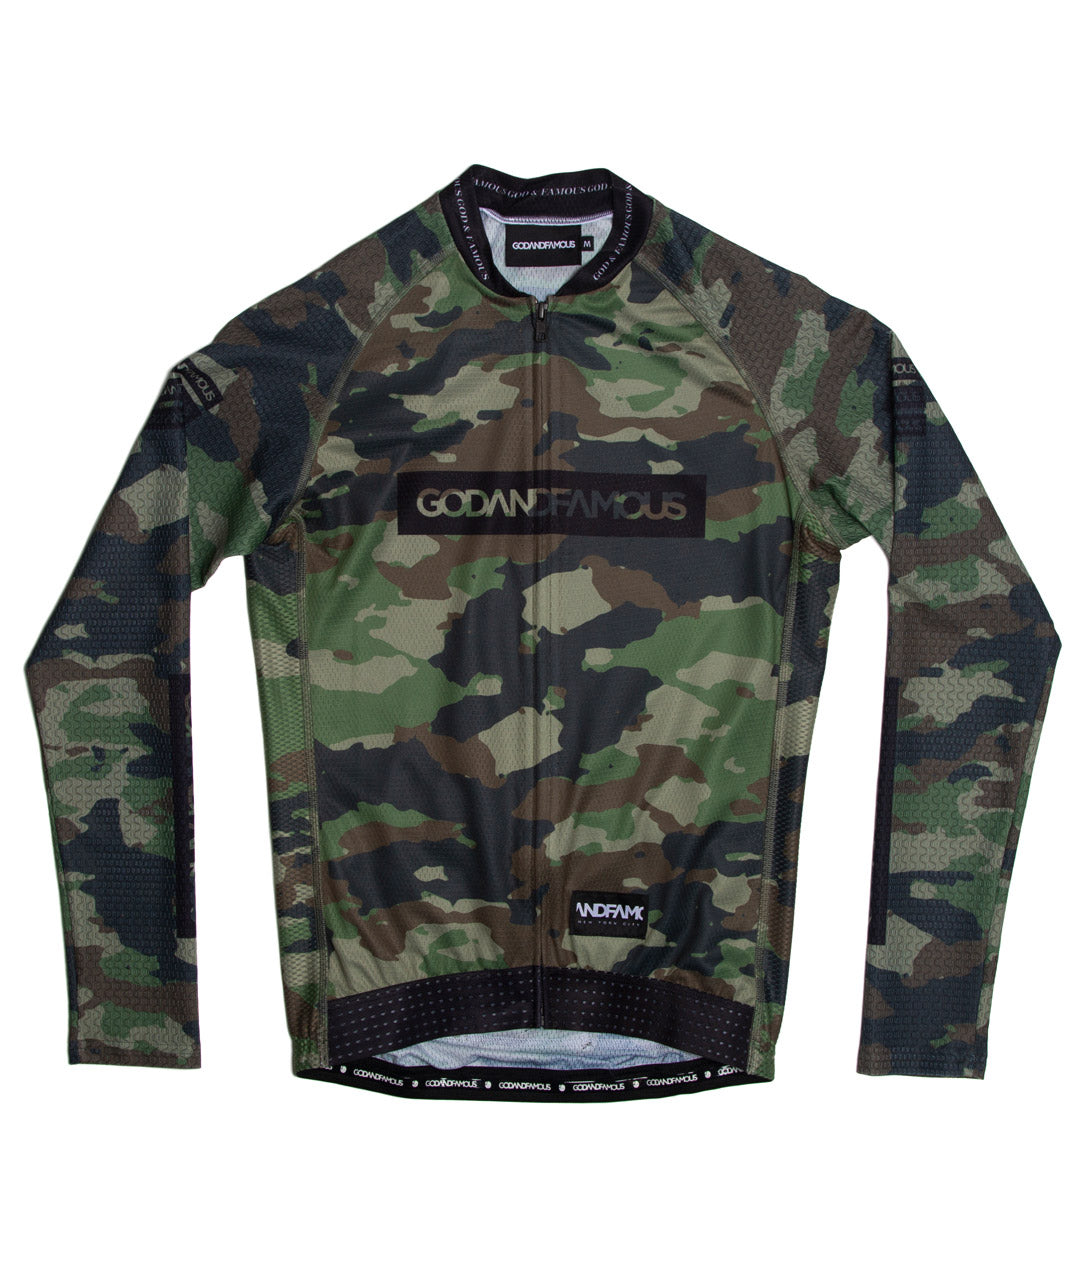 God and Famous Woodland Camo LS Jersey